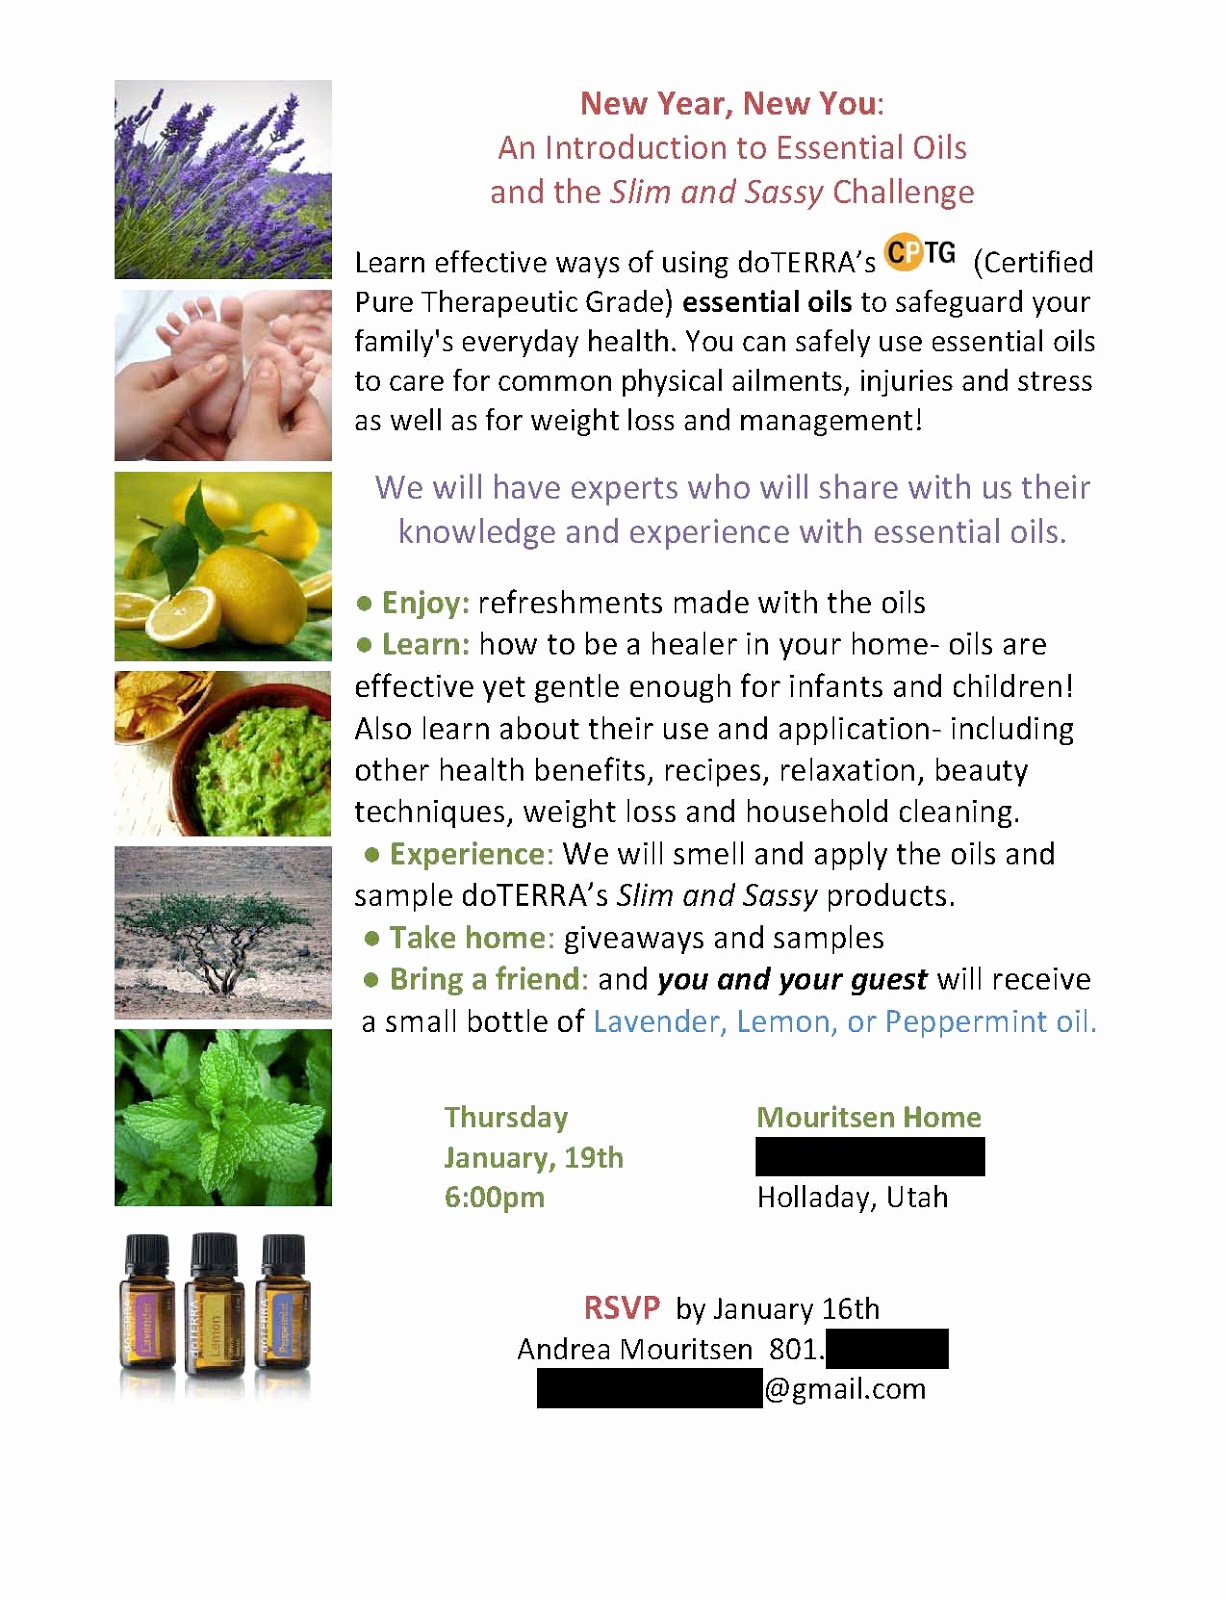 Doterra Essential Oil Class Invitation Unique Doterra Invitation Template